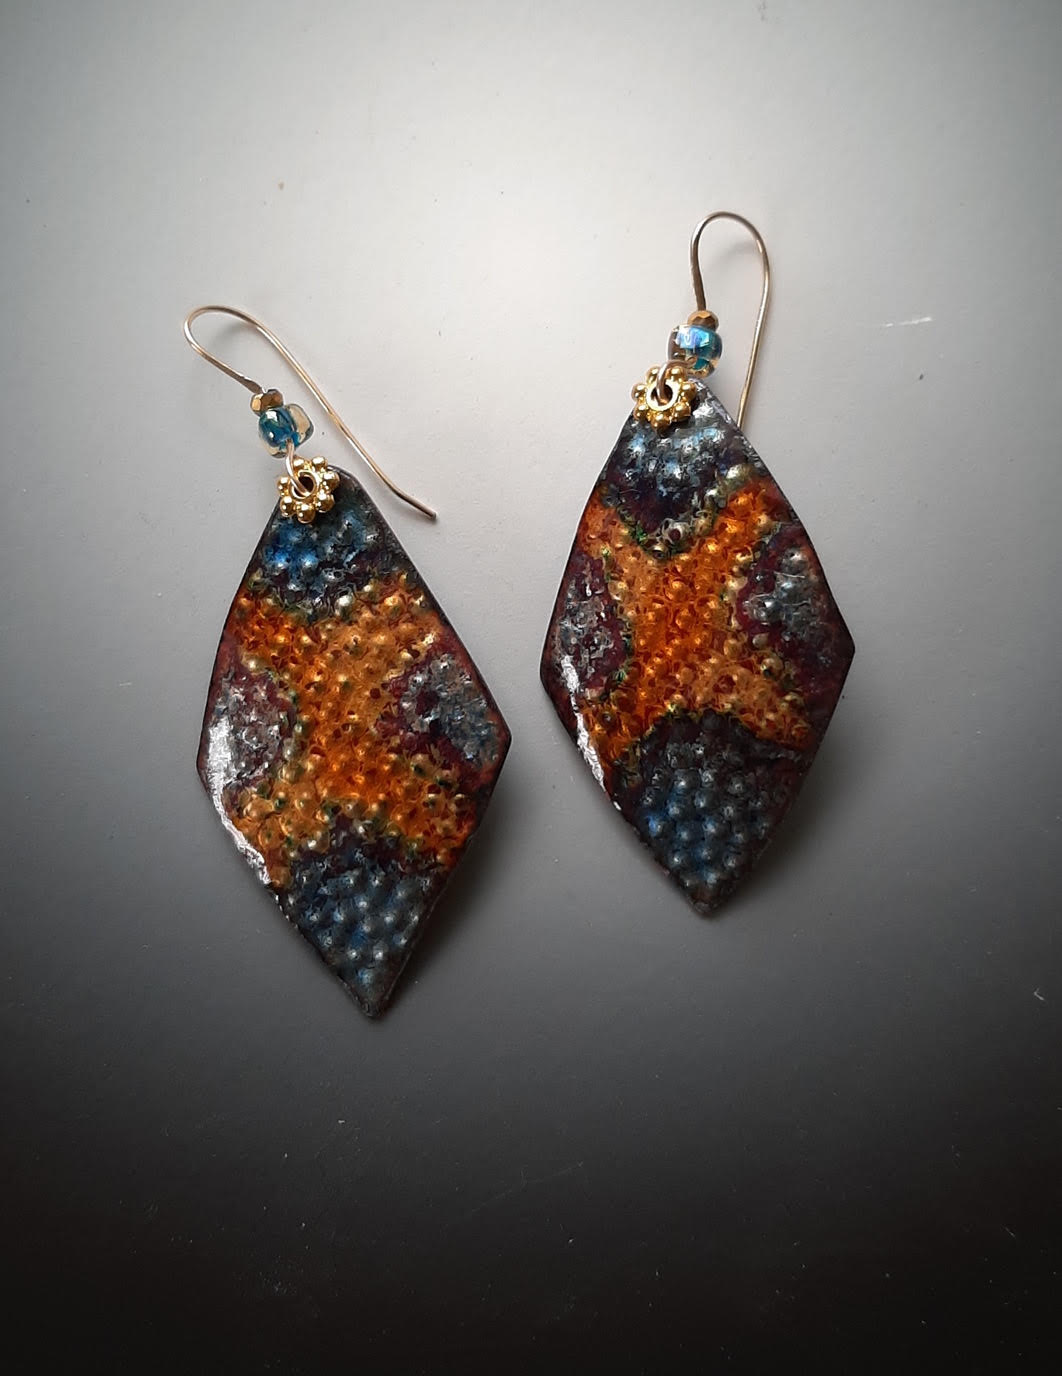 Rhombus Earrings with Gold Filled Hooks